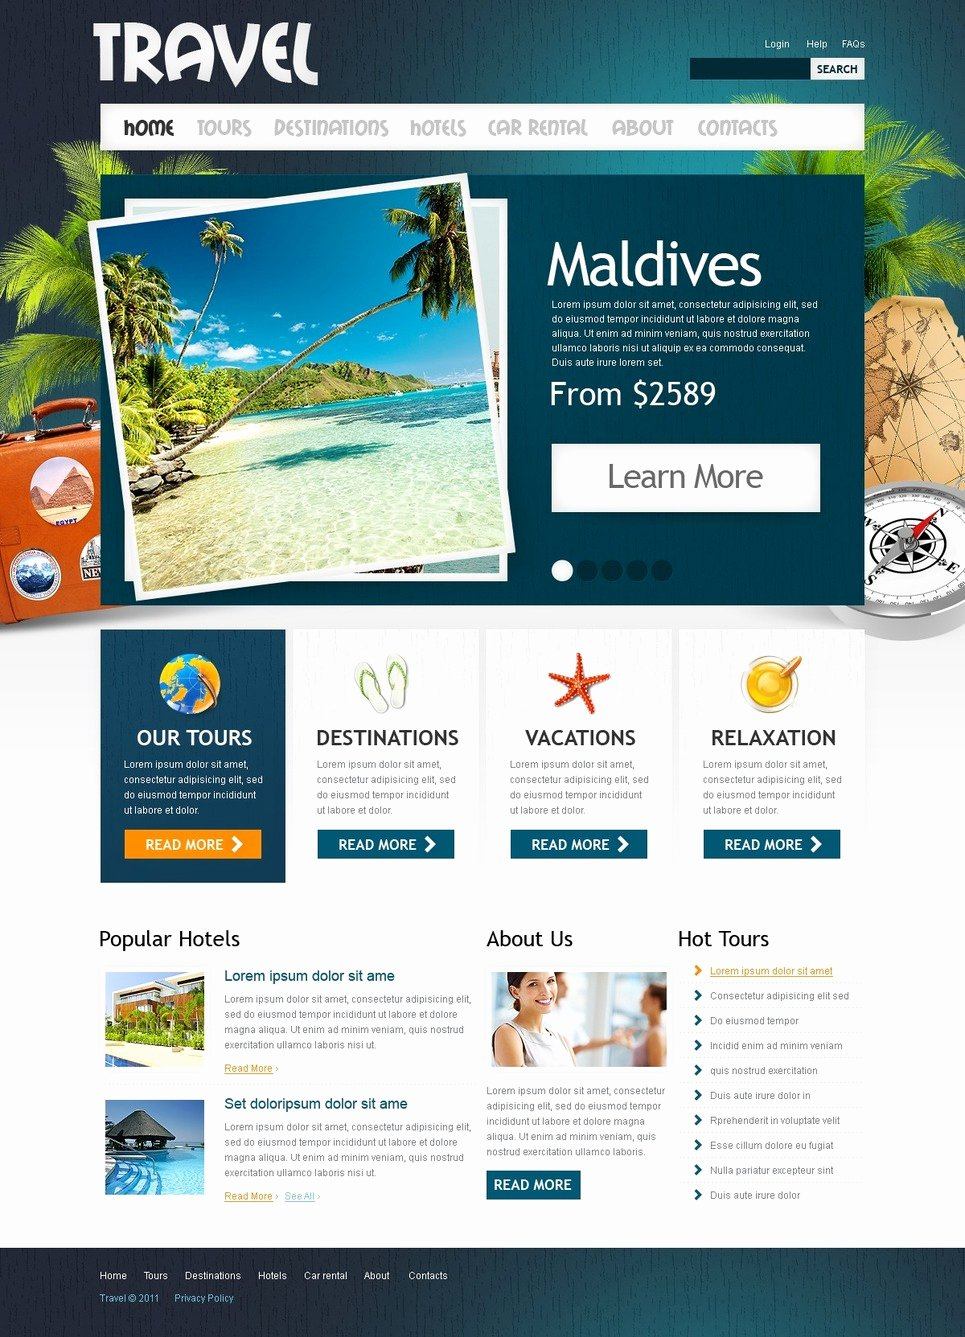 Travel Agency Website Template Lovely Travel Agency Website Template